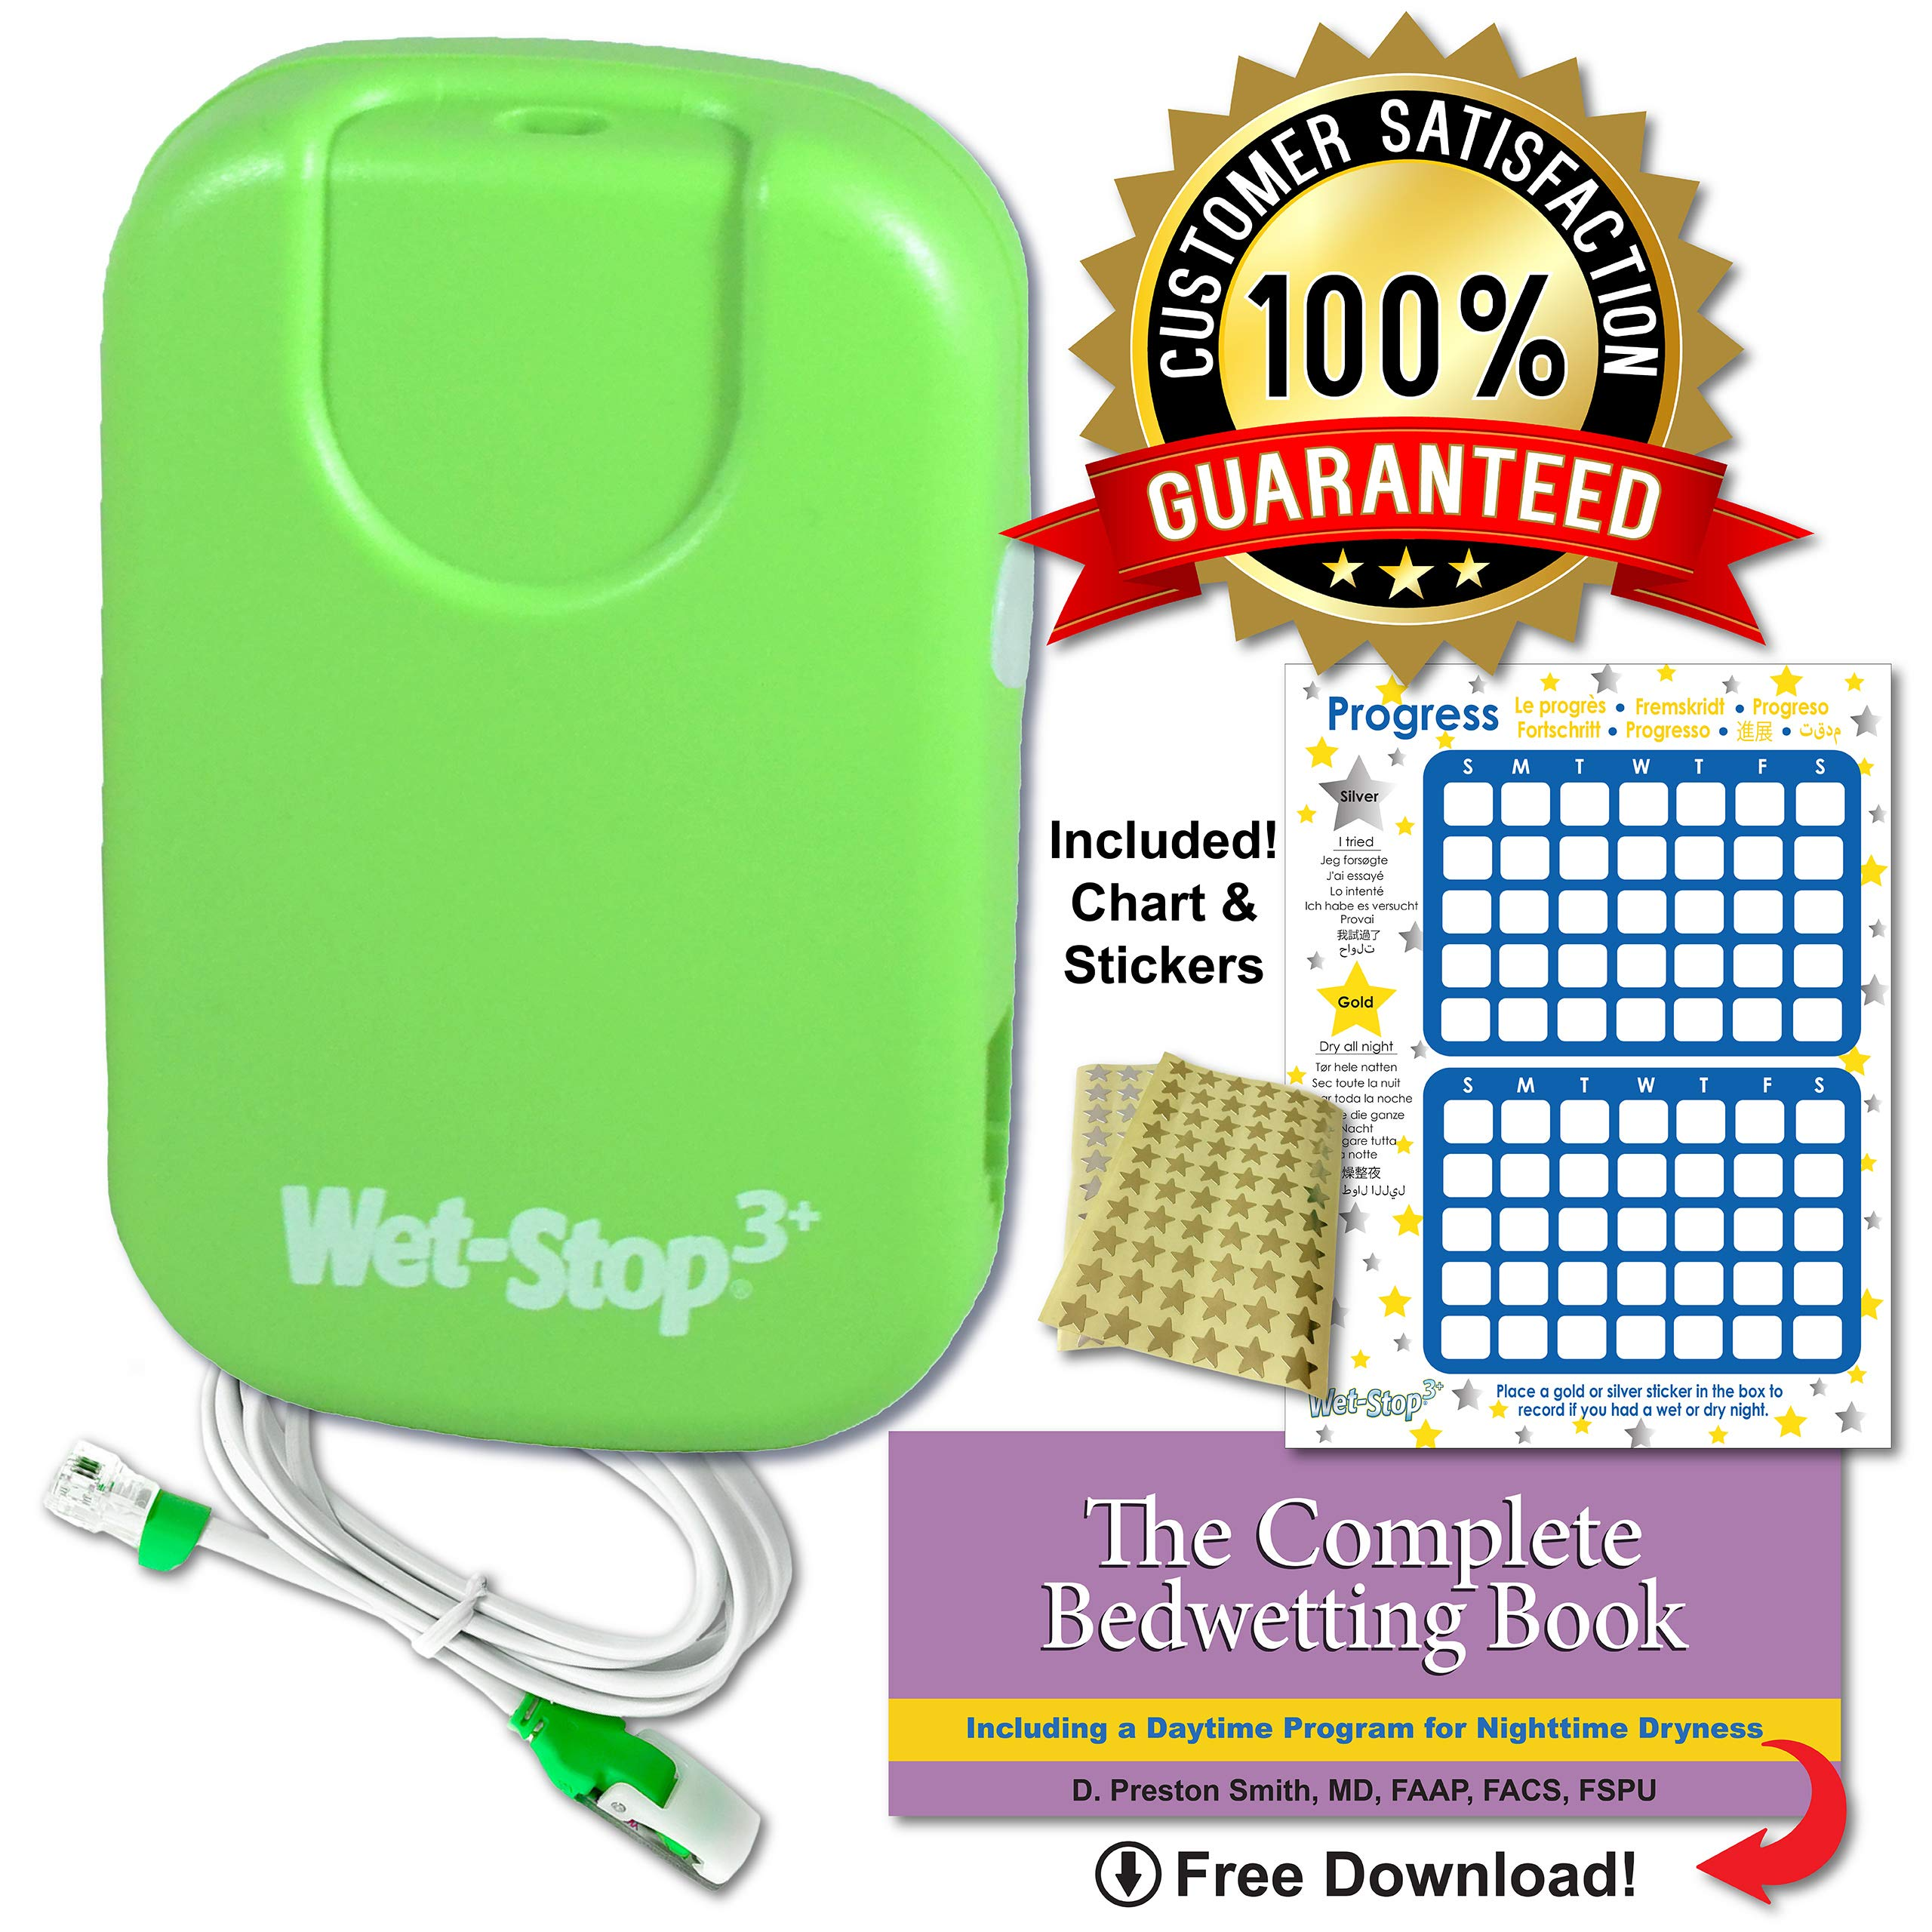 Wet Stop3 Bedwetting Enuresis Vibration Options